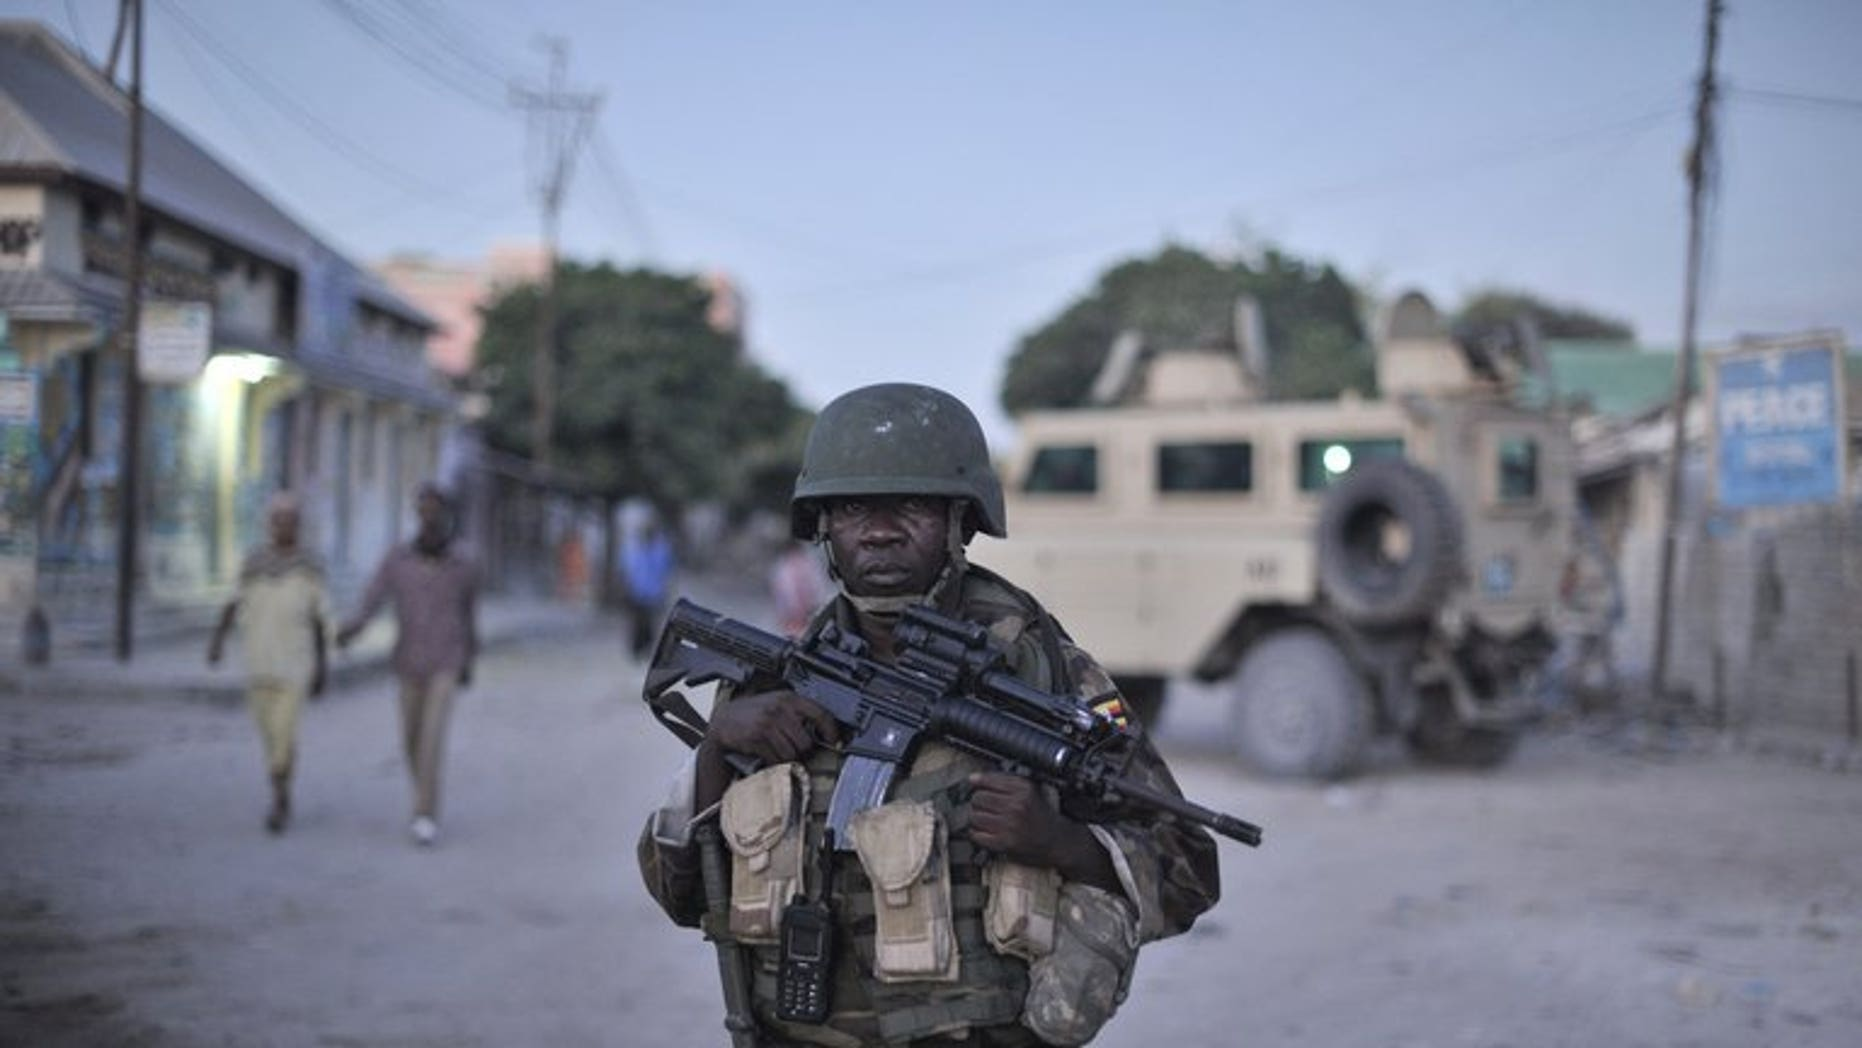 An AMISOM soldier monitors a street in Mogadishu. Gunmen killed two Somalis and wounded a Swedish woman in central Mogadishu on Wednesday when they opened fire on their car in the latest attack in the troubled city, police said.